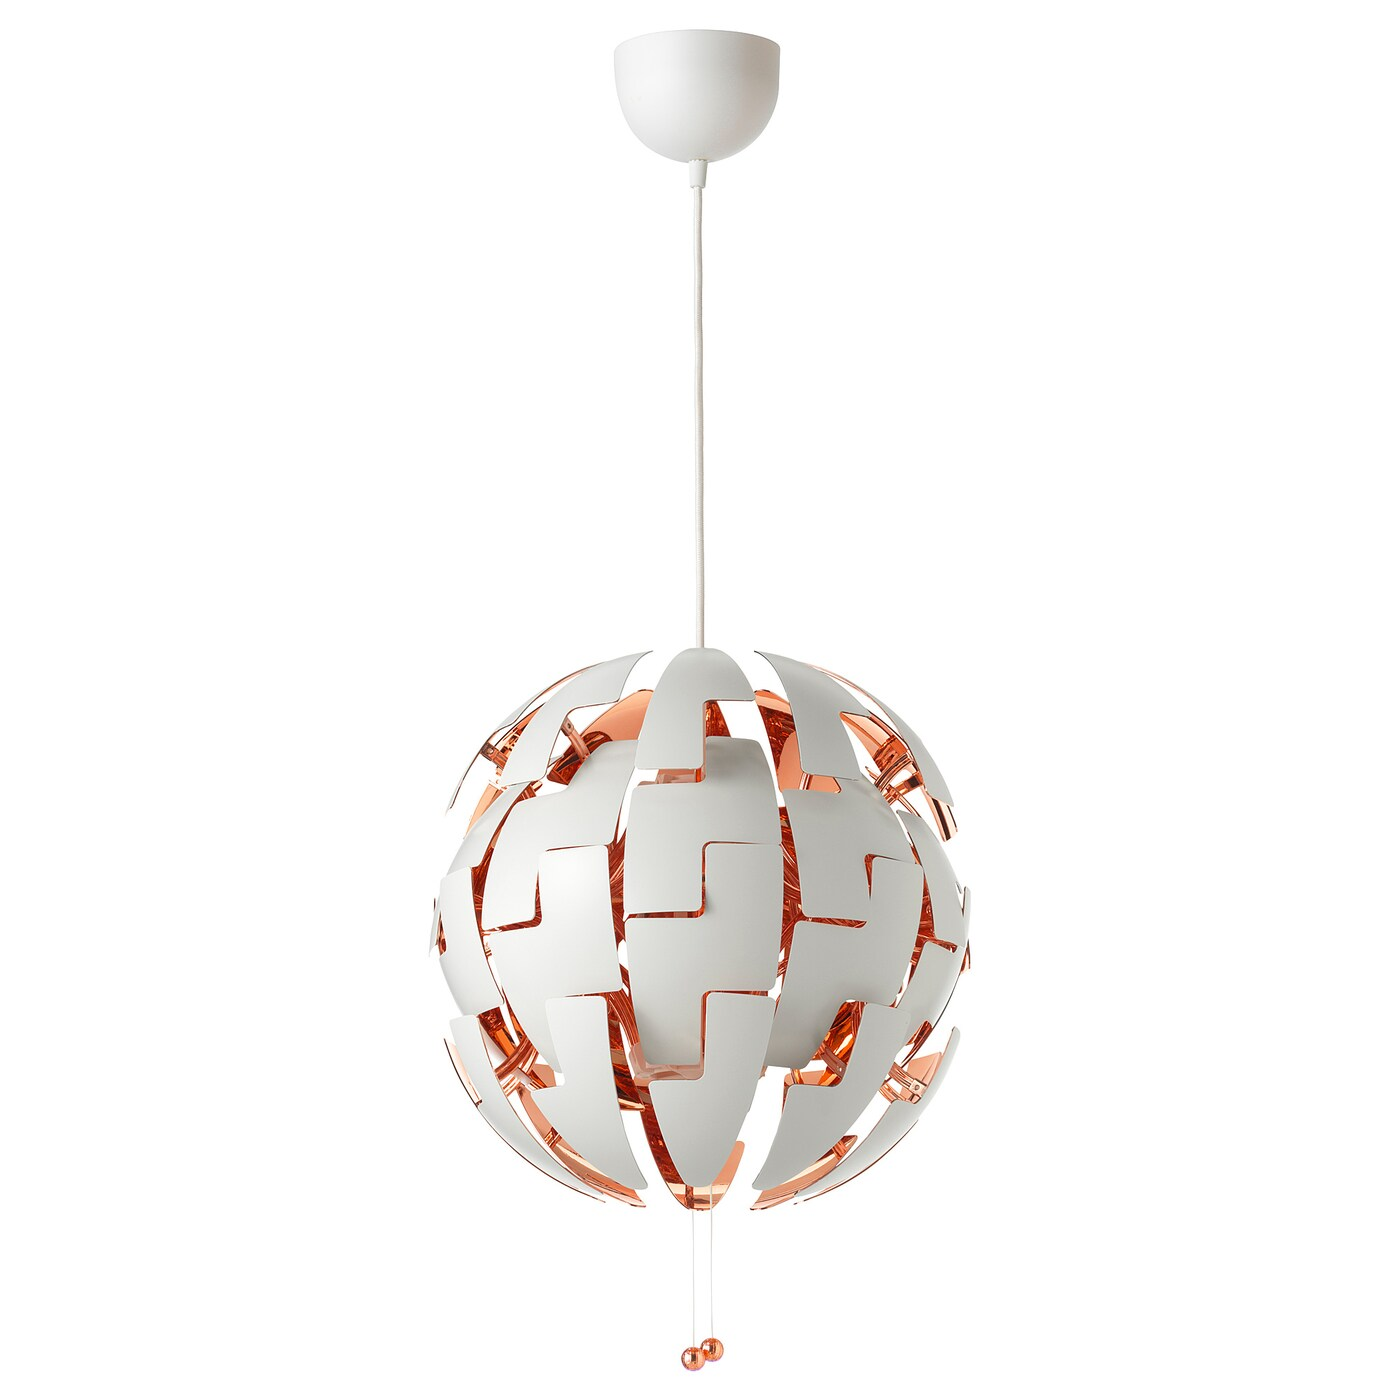 Lampe Ball Ikea Ps 2014 Pendant Lamp White Copper Colour